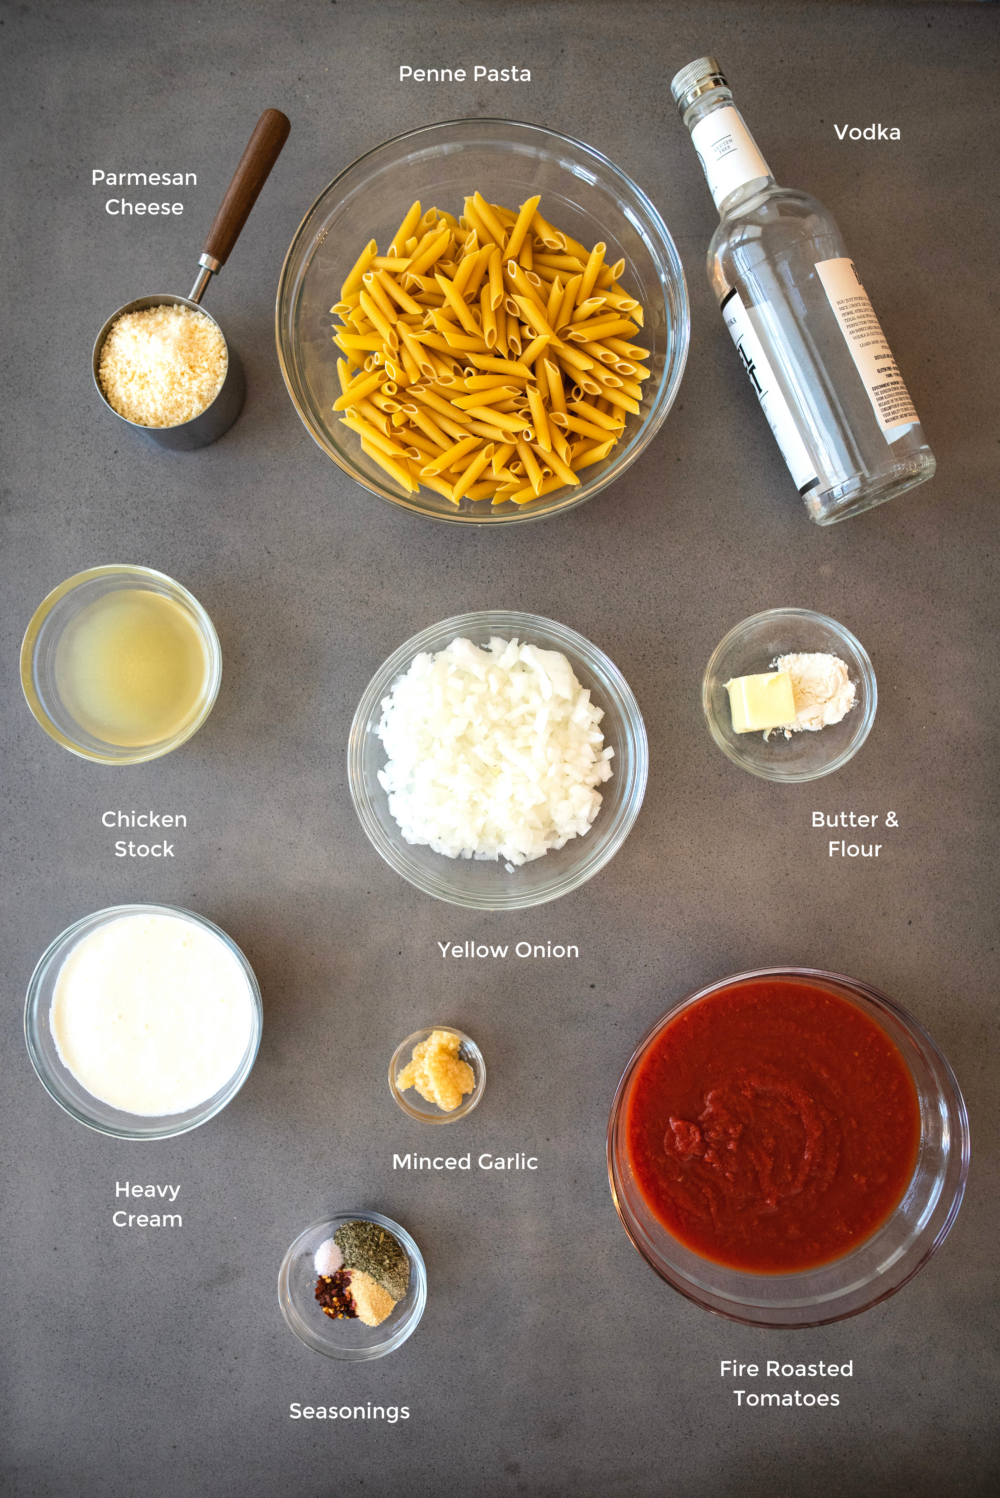 penne alla vodka ingredients